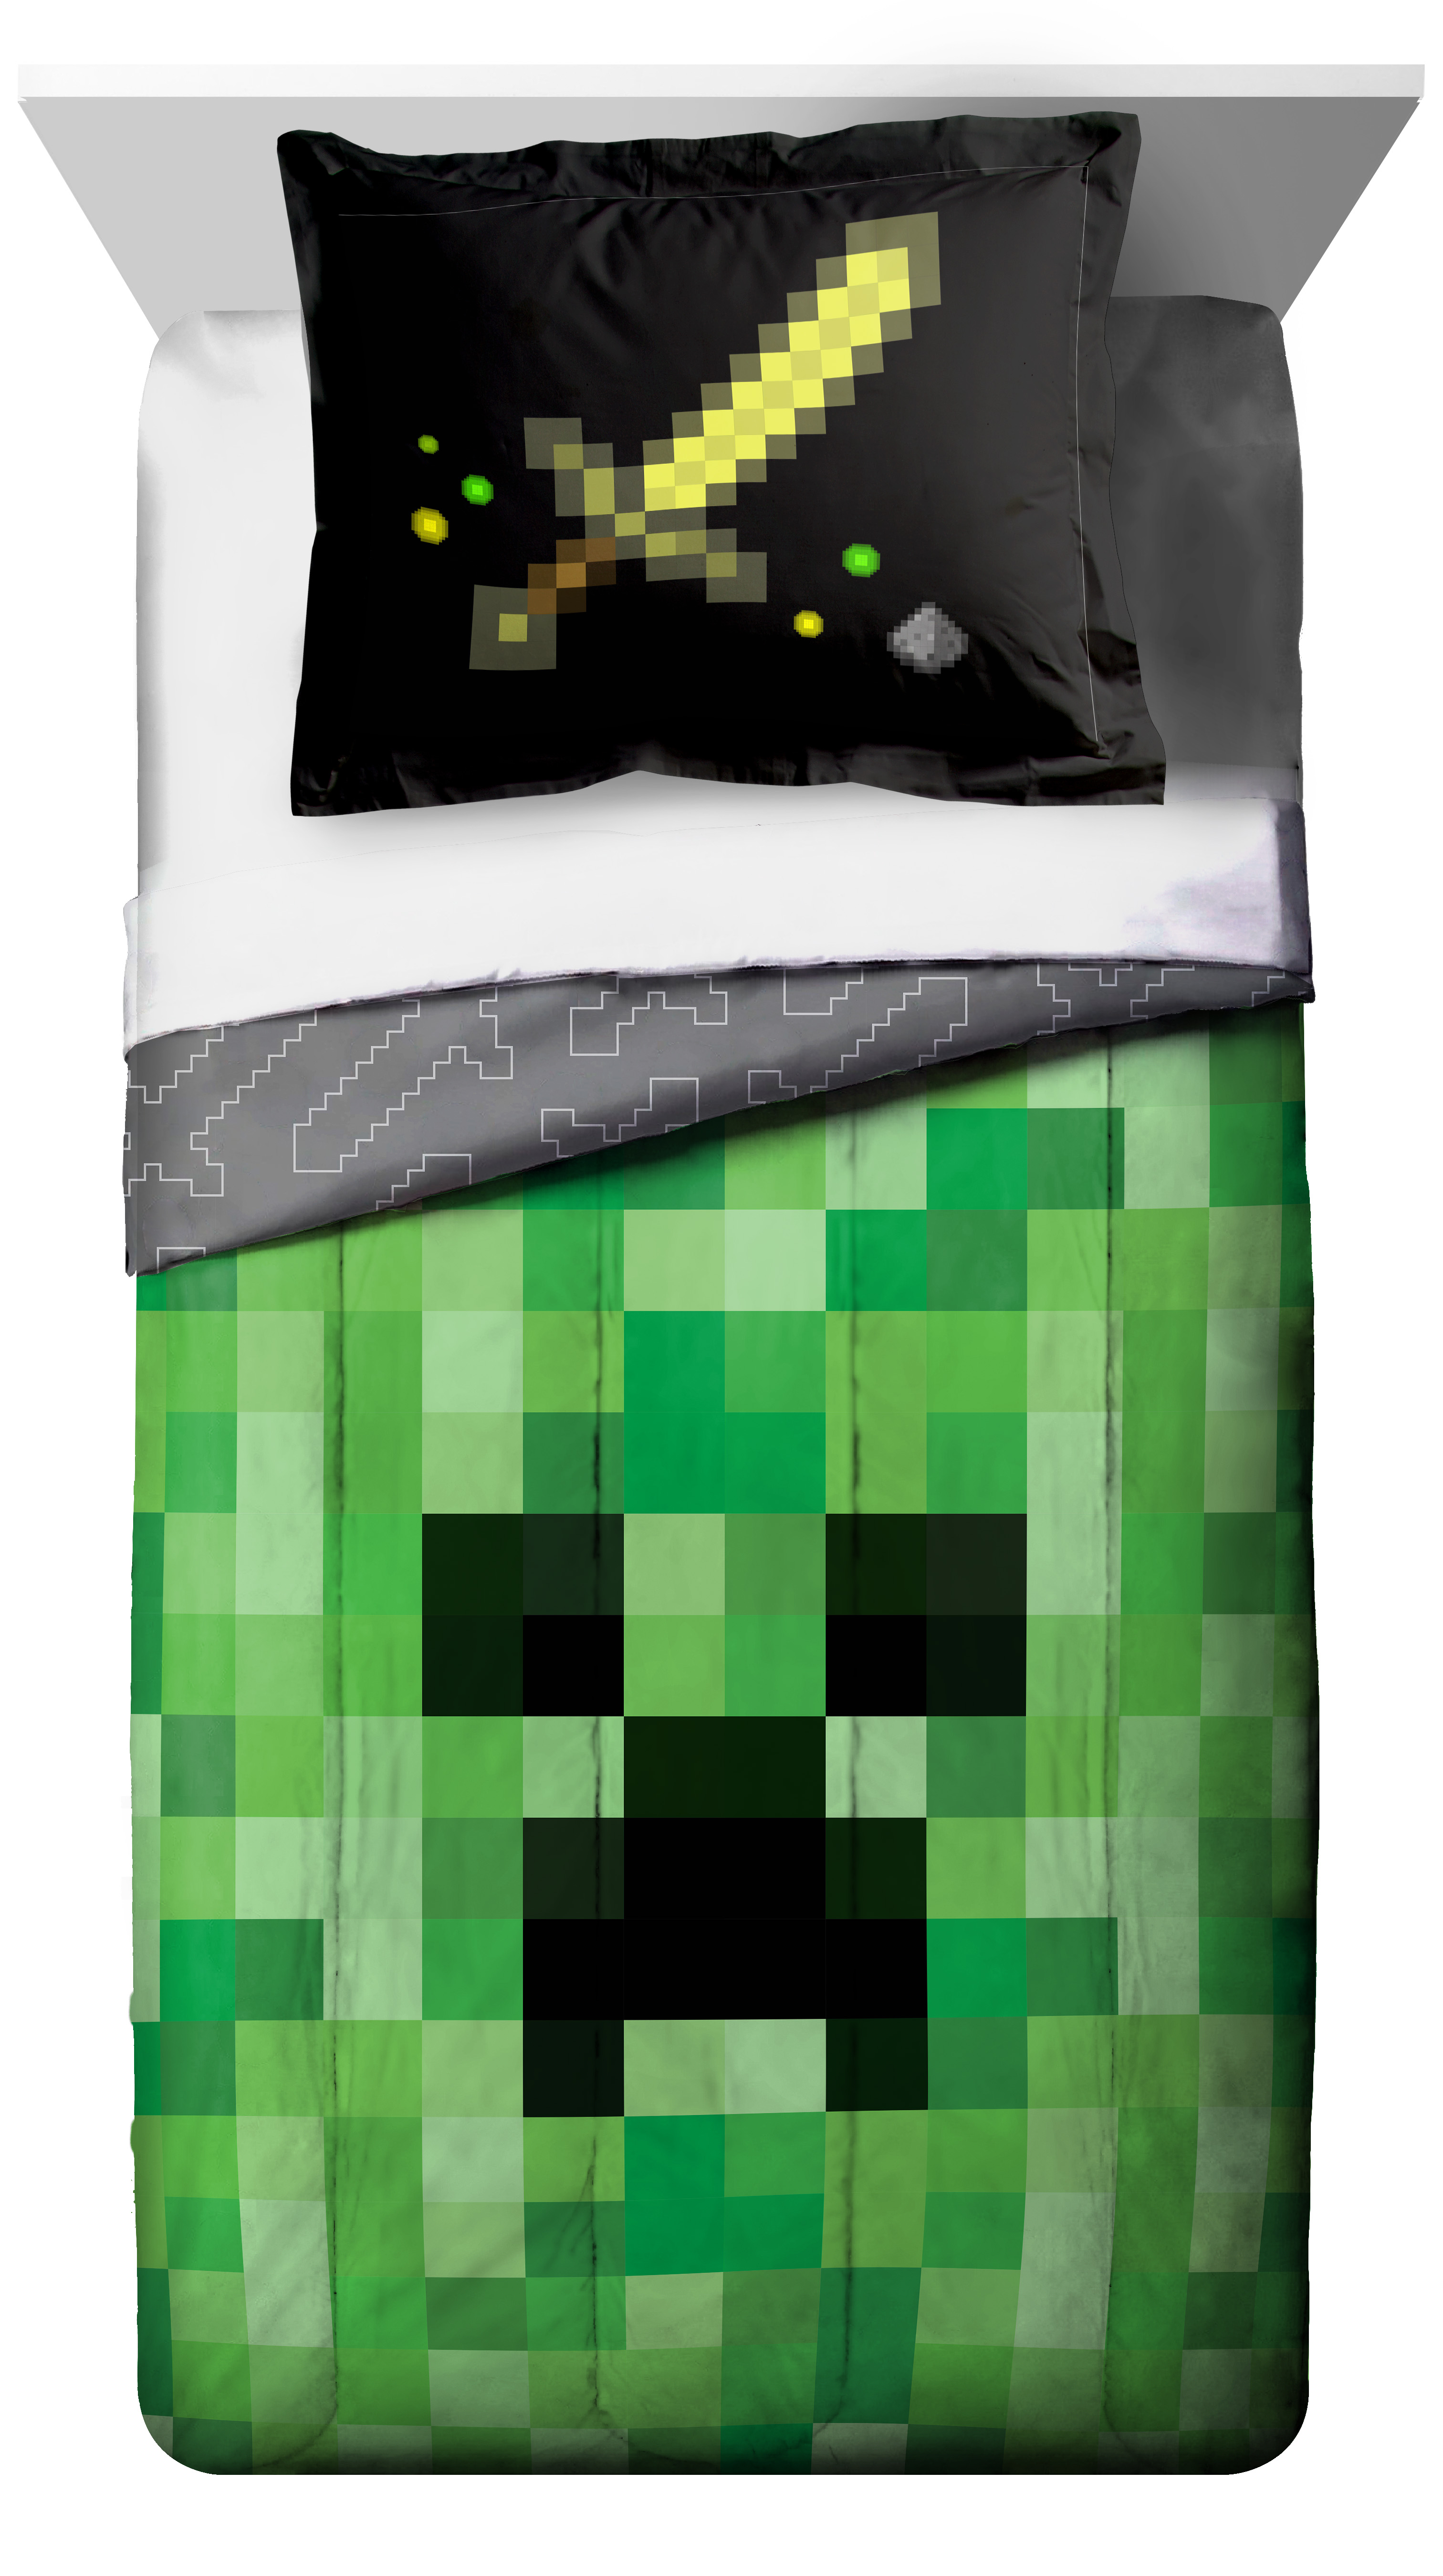 Minecraft 2 Piece Twin Full Comforter and Sham, Kid's Bedding by Jay Franco